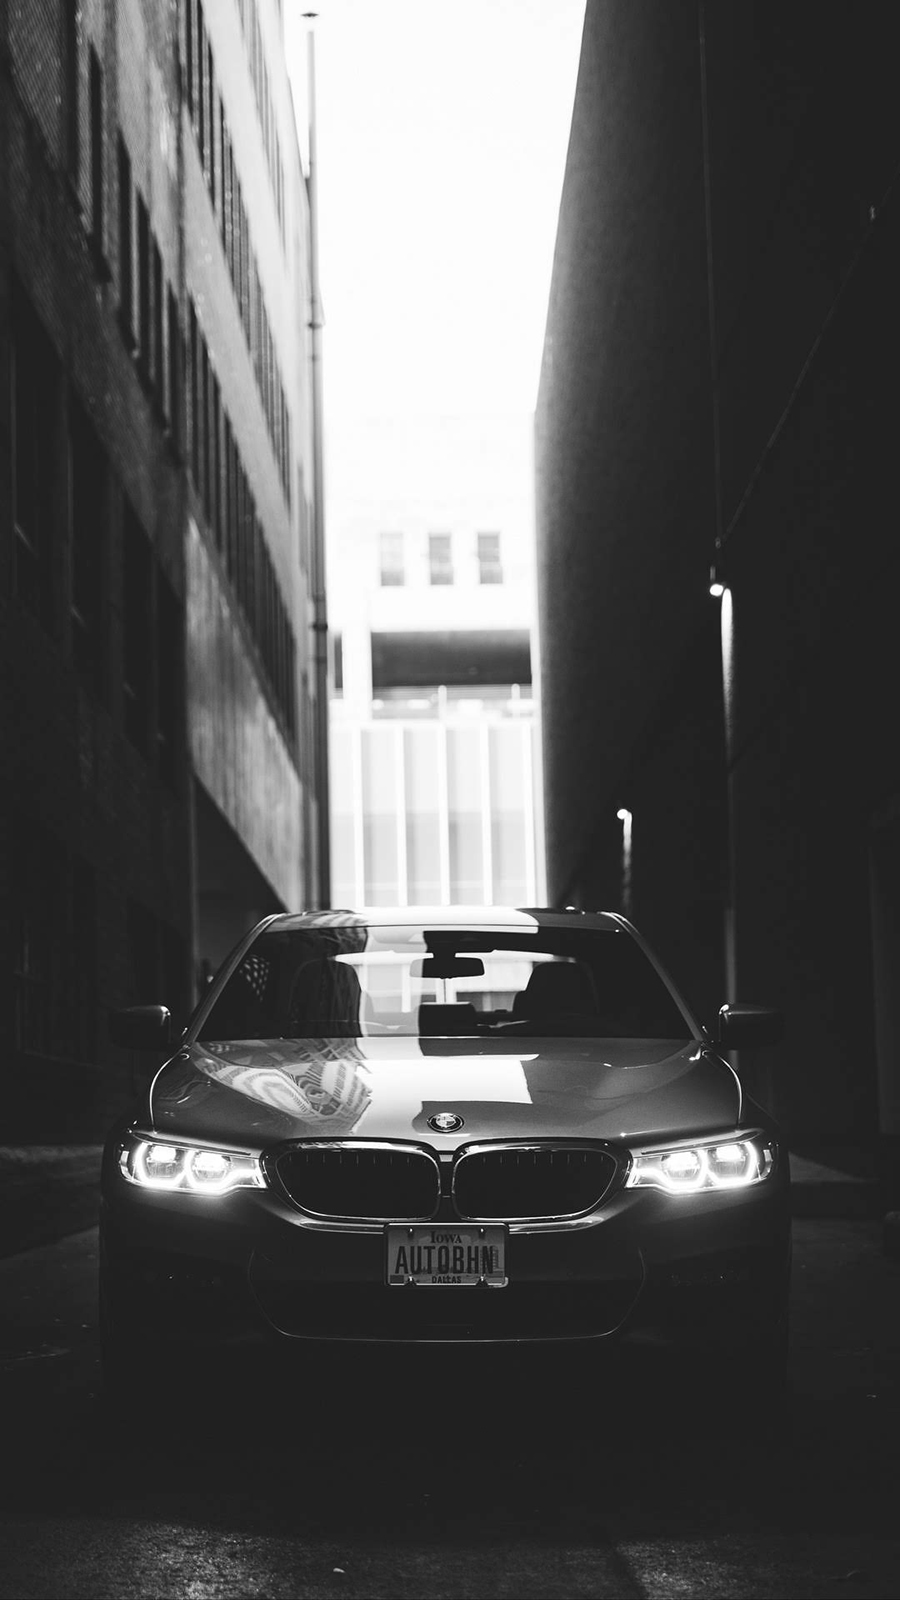 BMW Wallpapers for İPhone Device